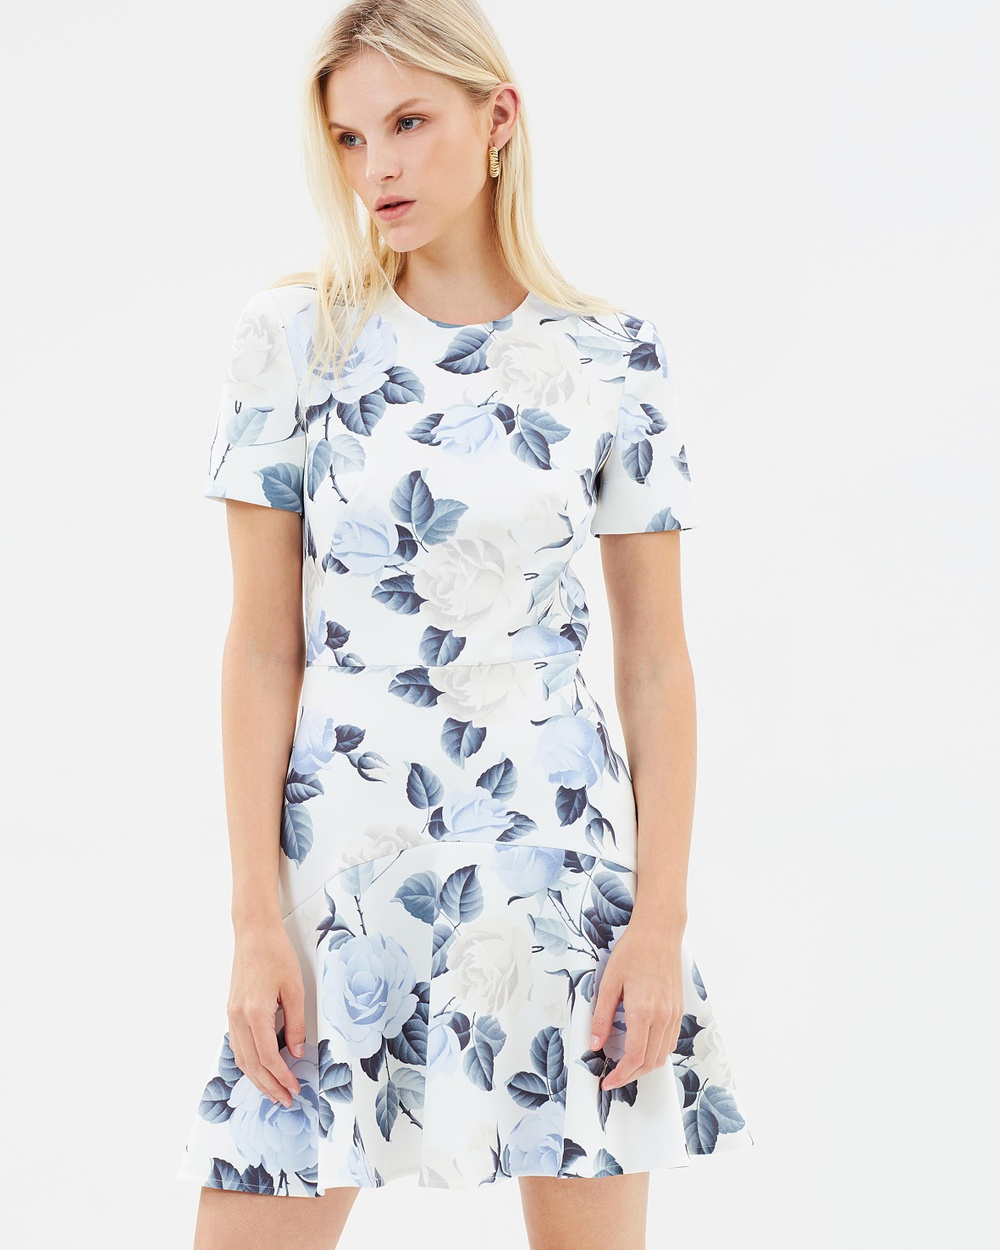 Lover Rosa Flip Mini Printed Dresses Grey Rose Rosa Flip Mini